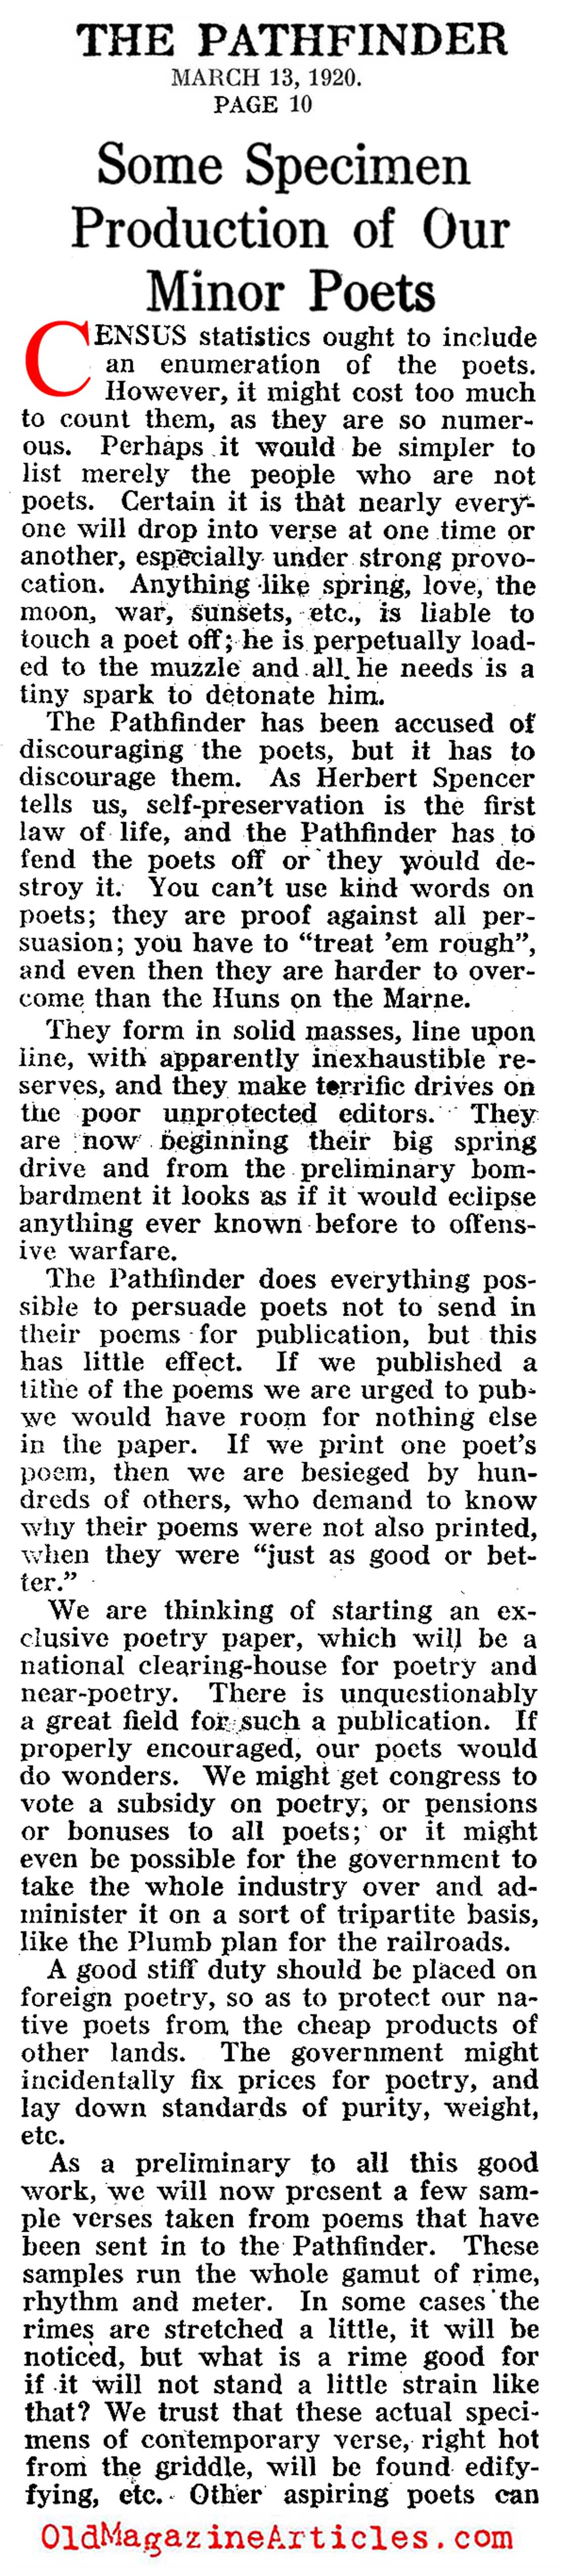 The Bad War Poets (Pathfinder Magazine, 1920)